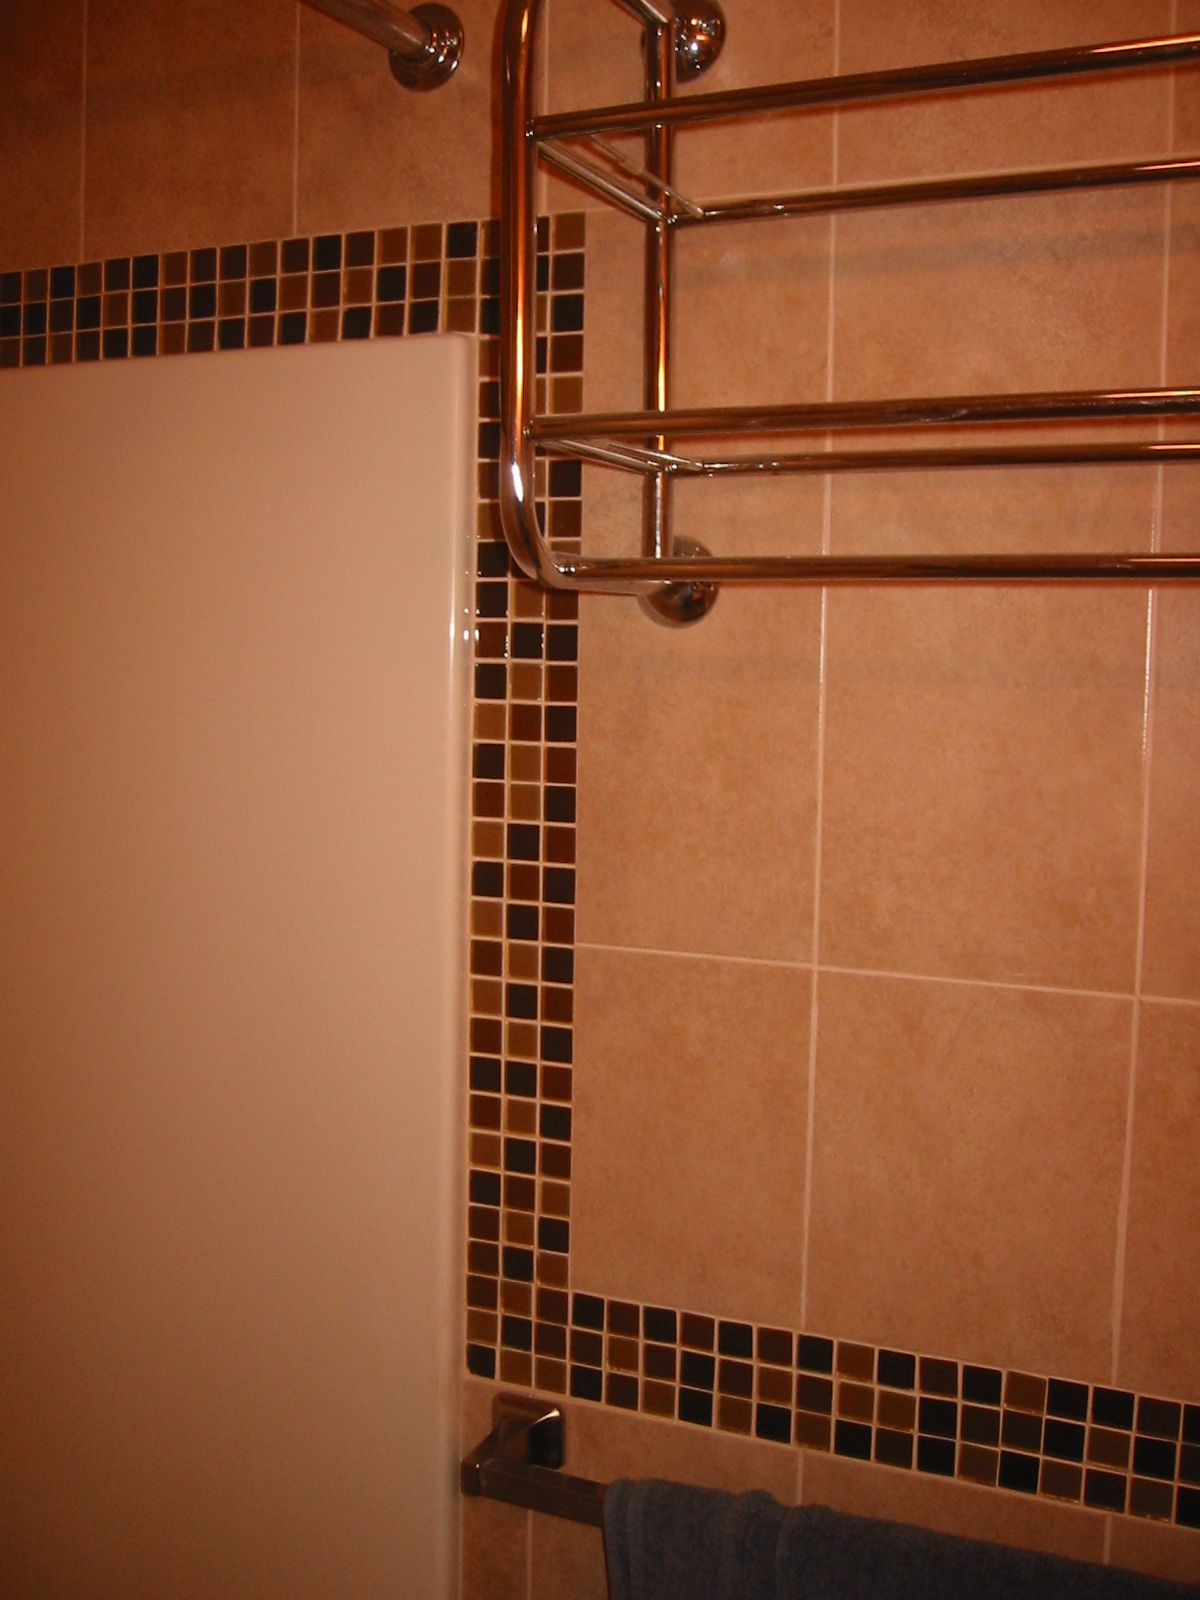 Tile around Fiberglass Shower | View Recent Tile Repair Jobs | All ...